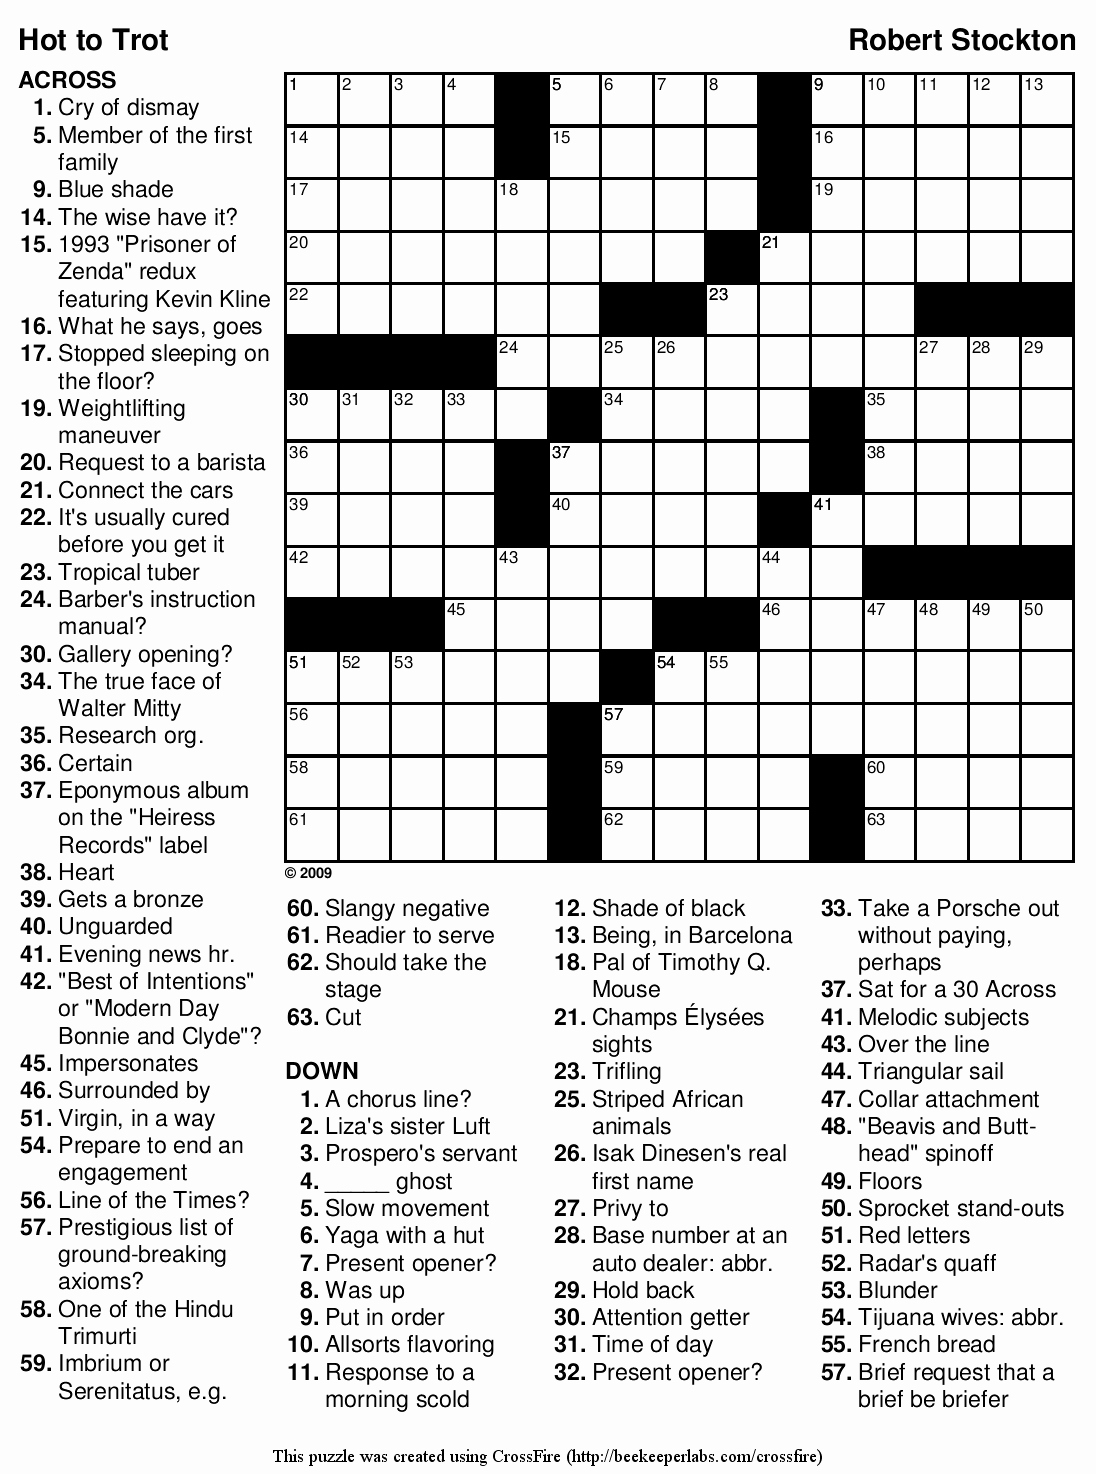 Daily Crossword Puzzle Printable – Rtrs.online - Difficult Crossword Puzzles Printable